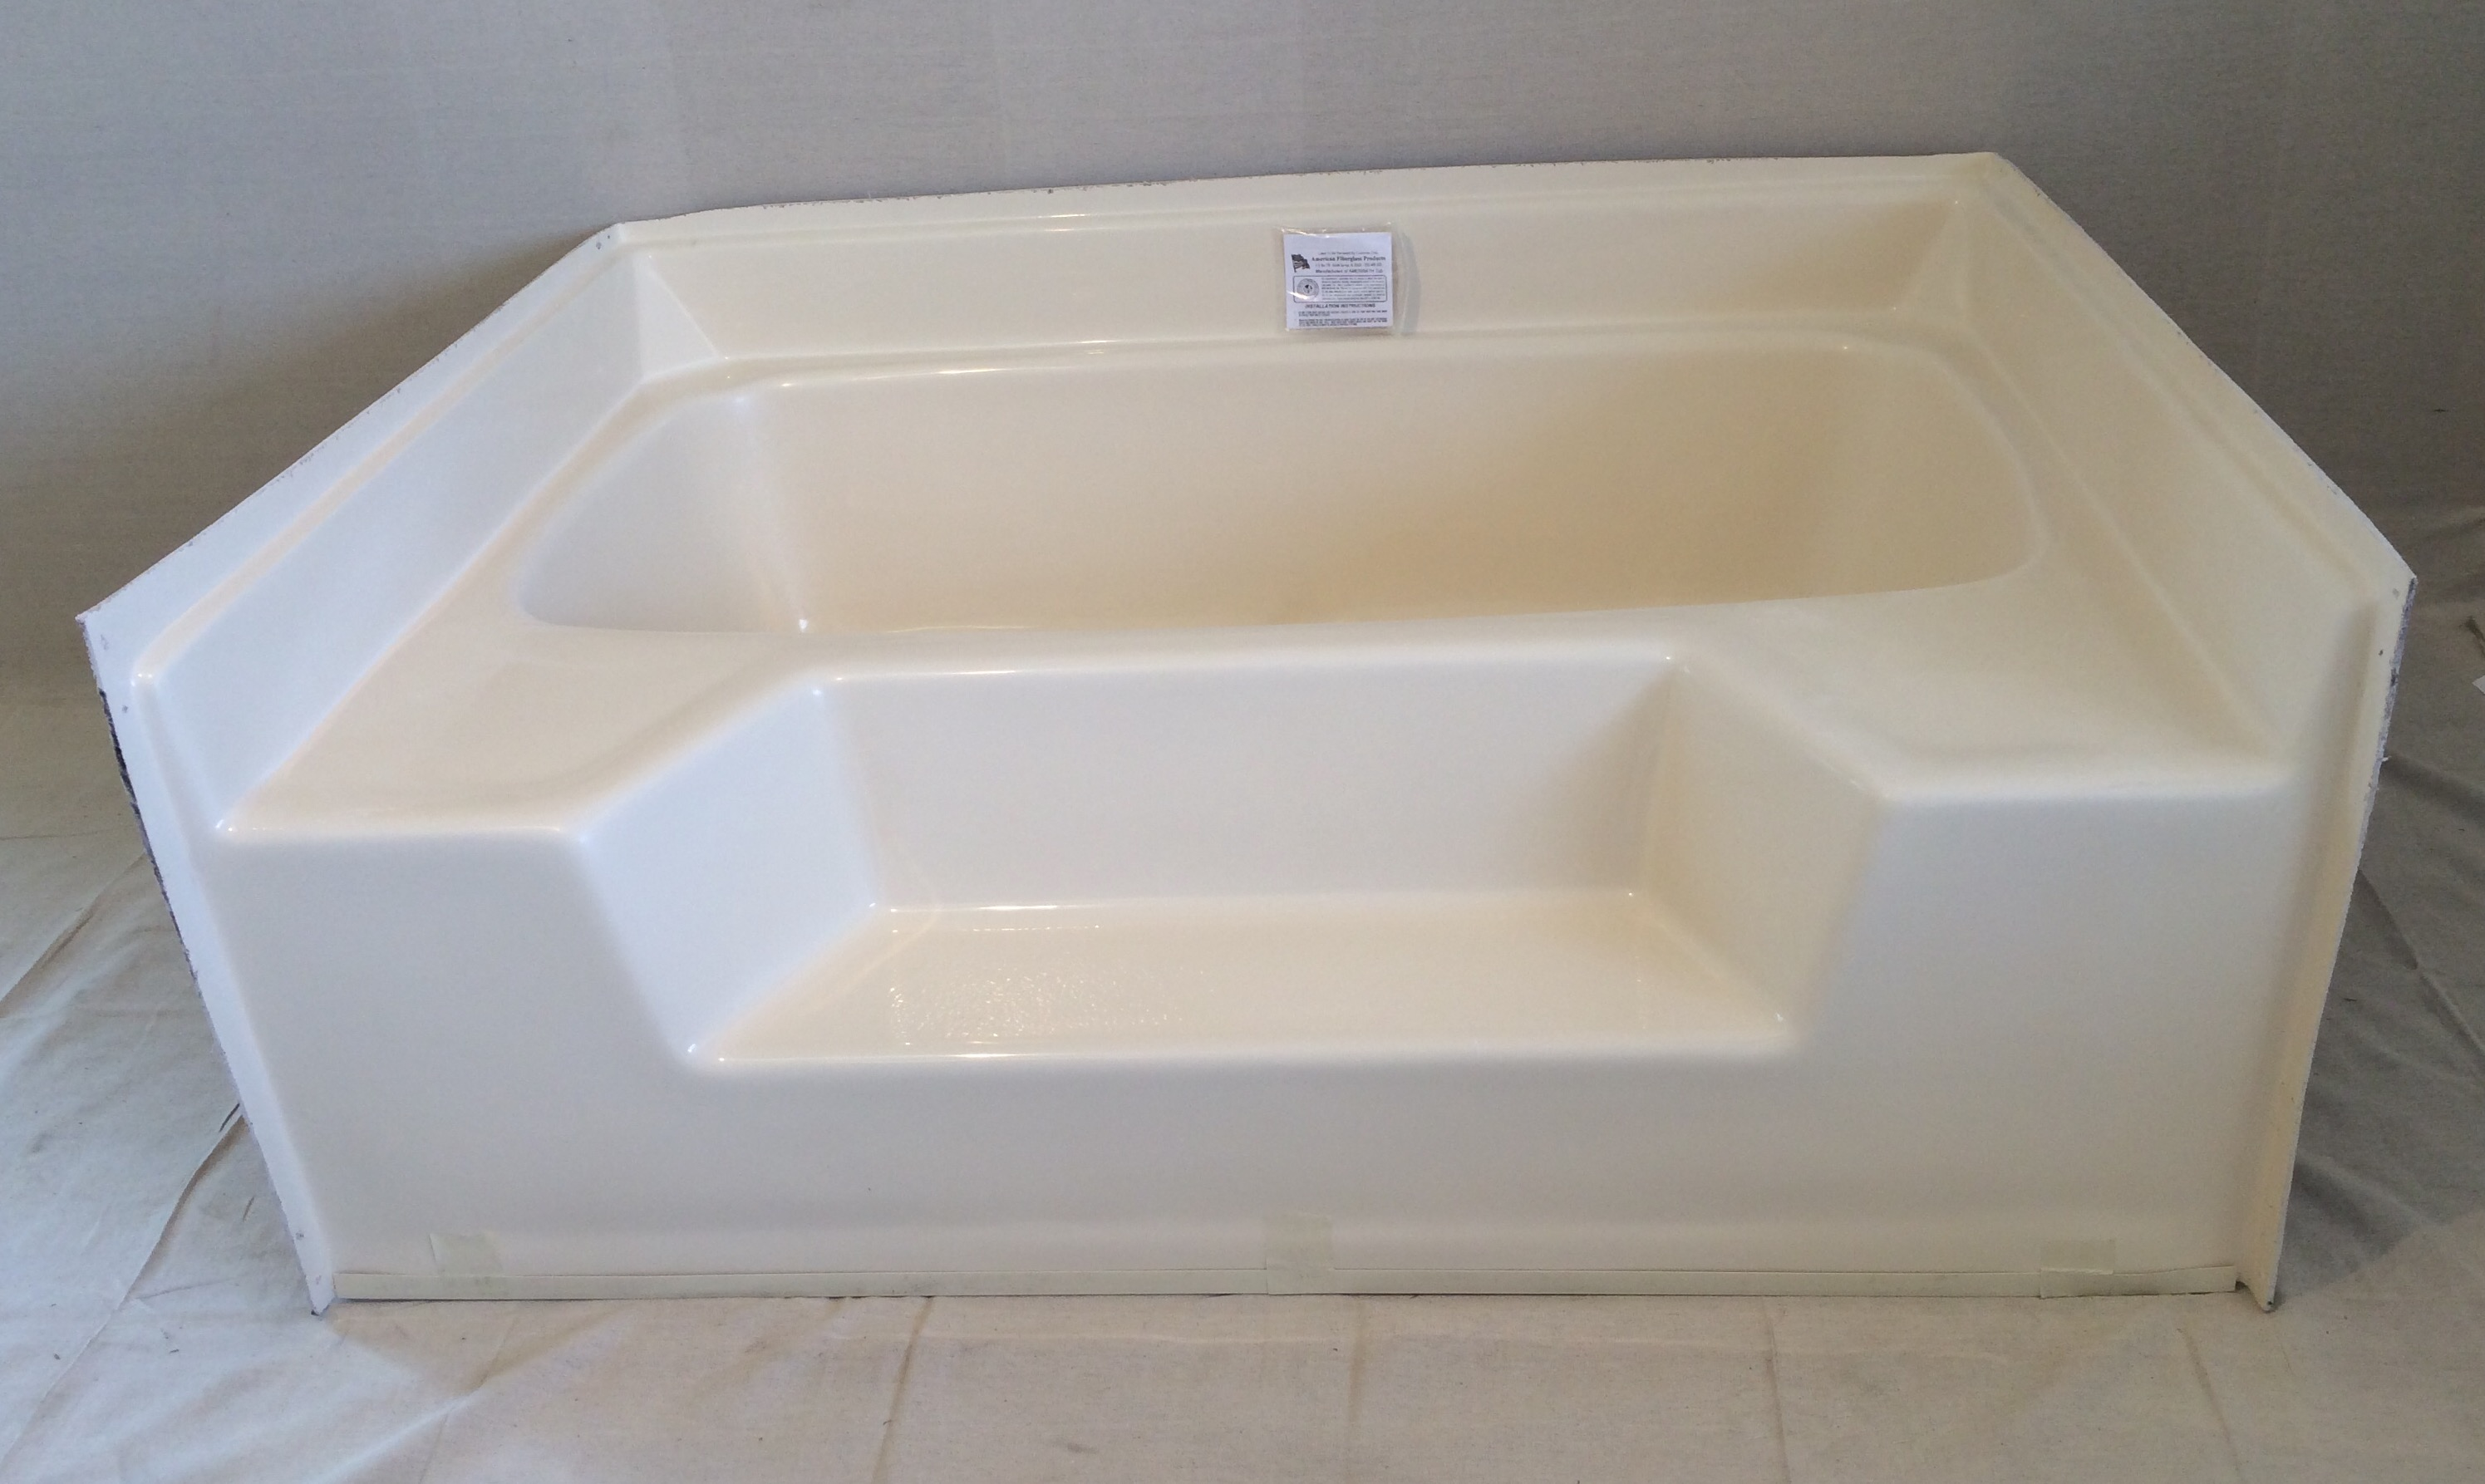 Garden tub royal durham supply for Fiberglass garden tub